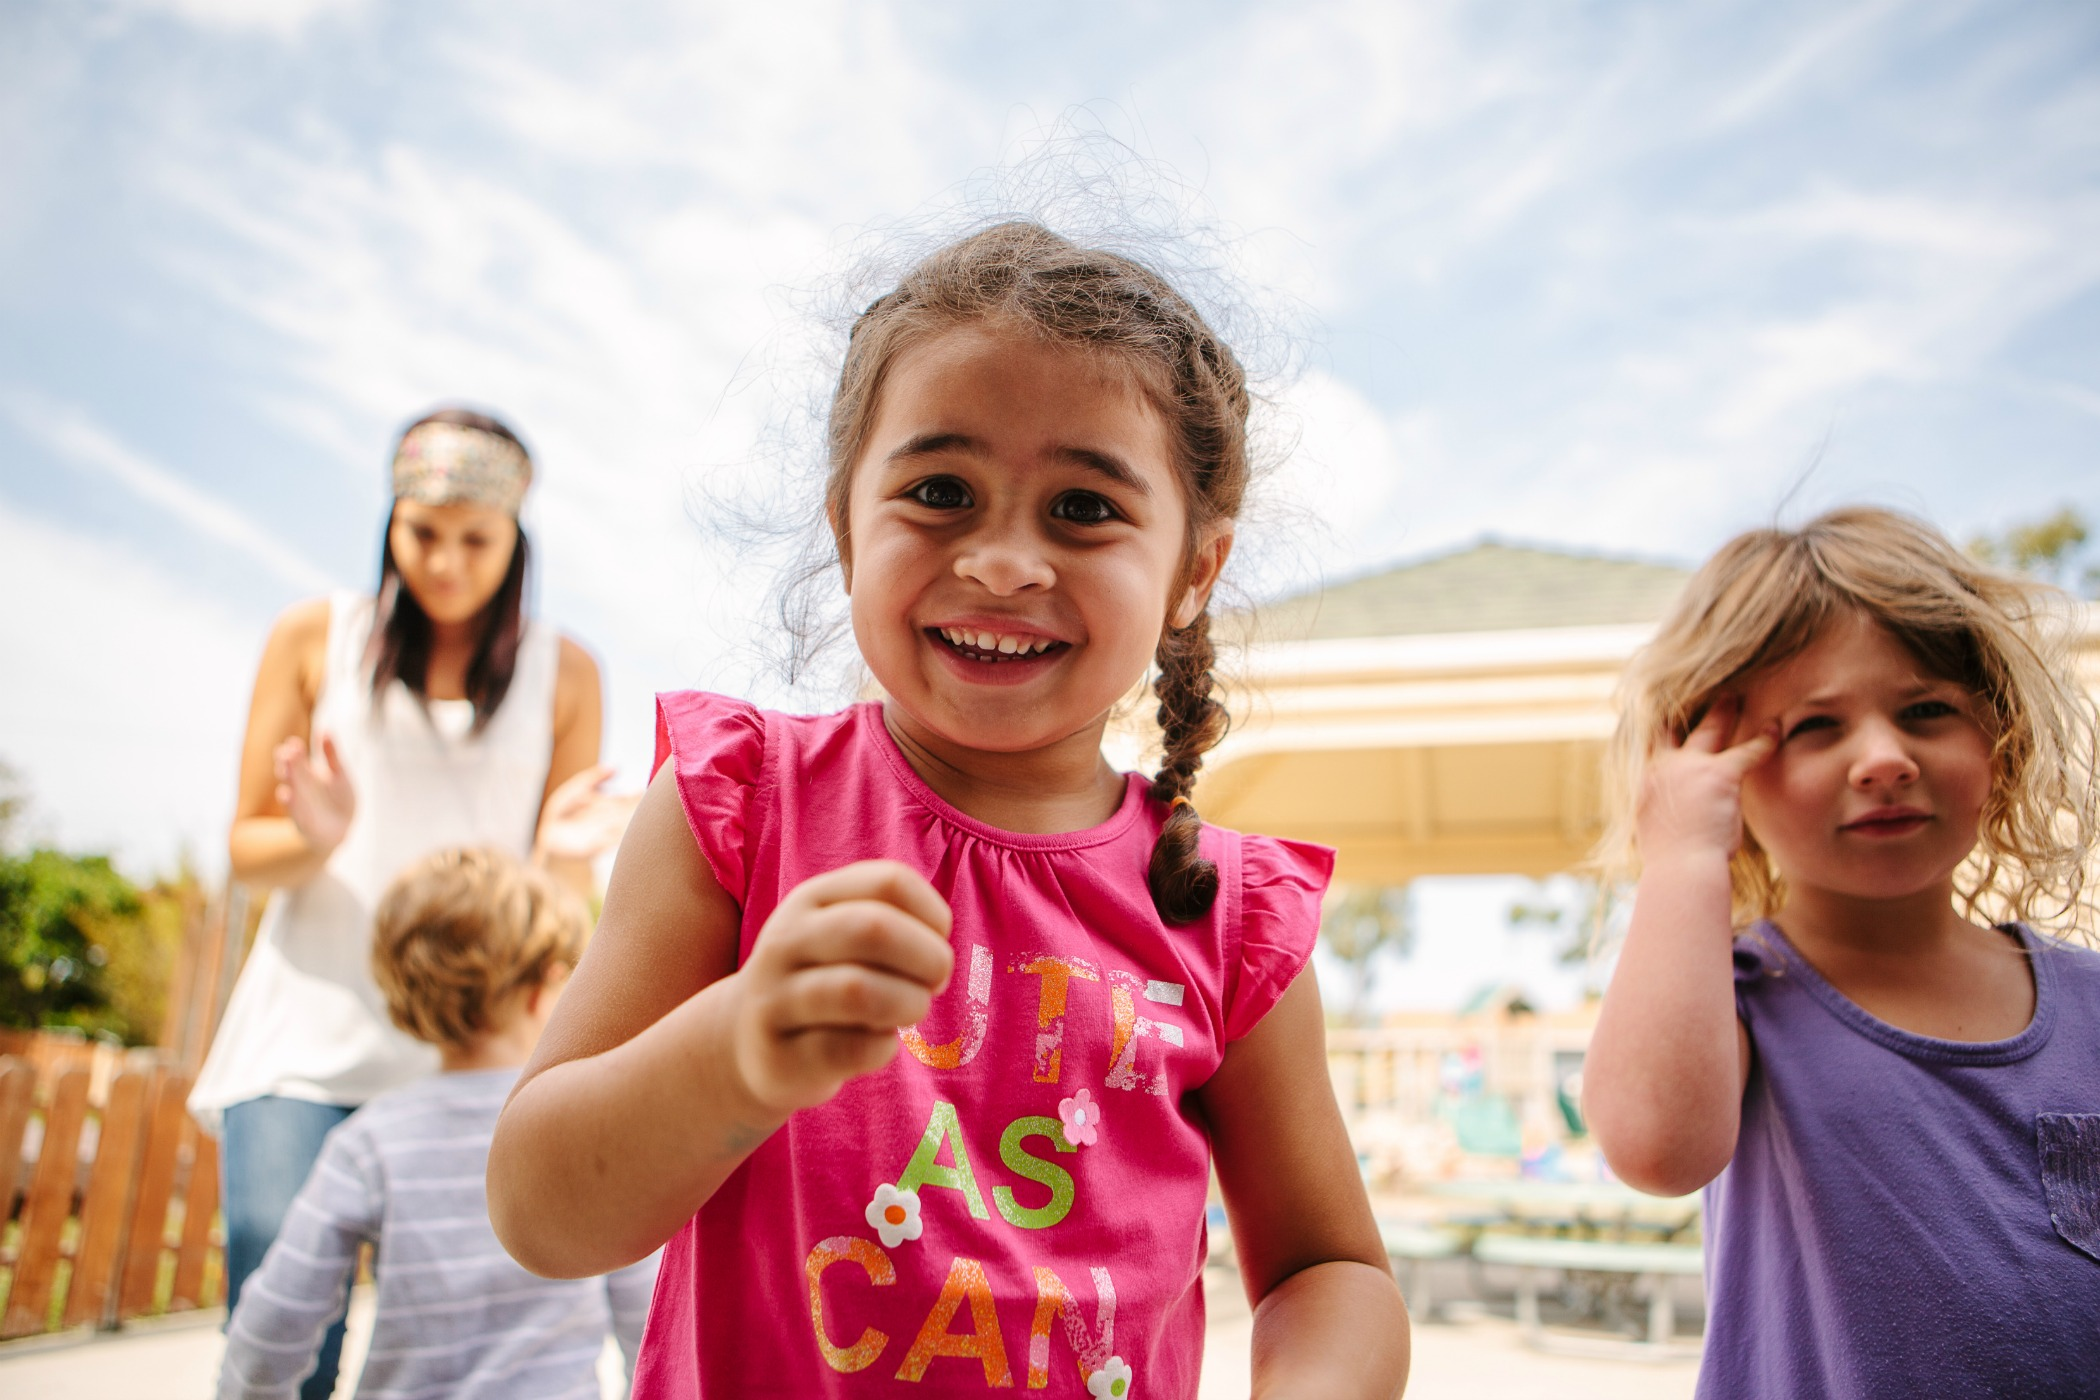 OCDE helps subsidize child care costs for eligible families